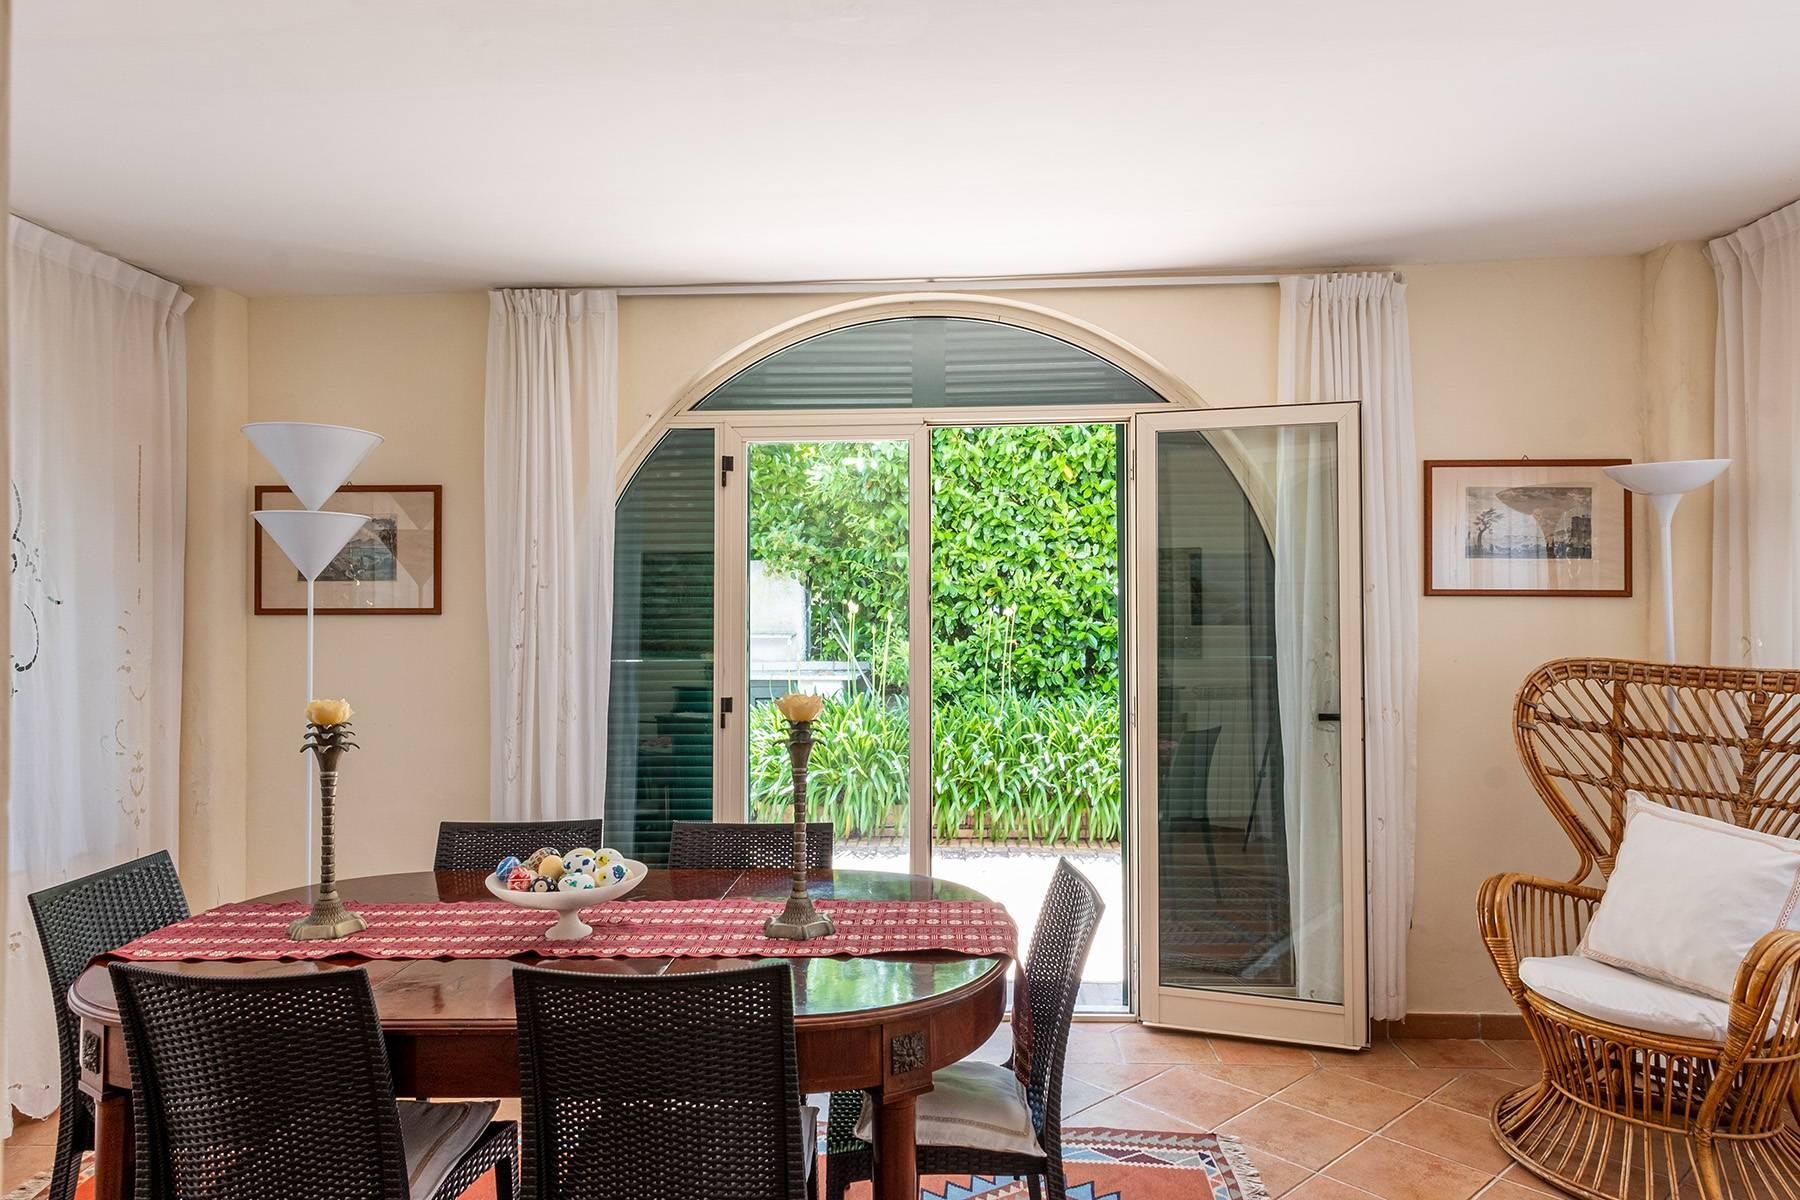 Charming villa with swimming pool in Anacapri - 8